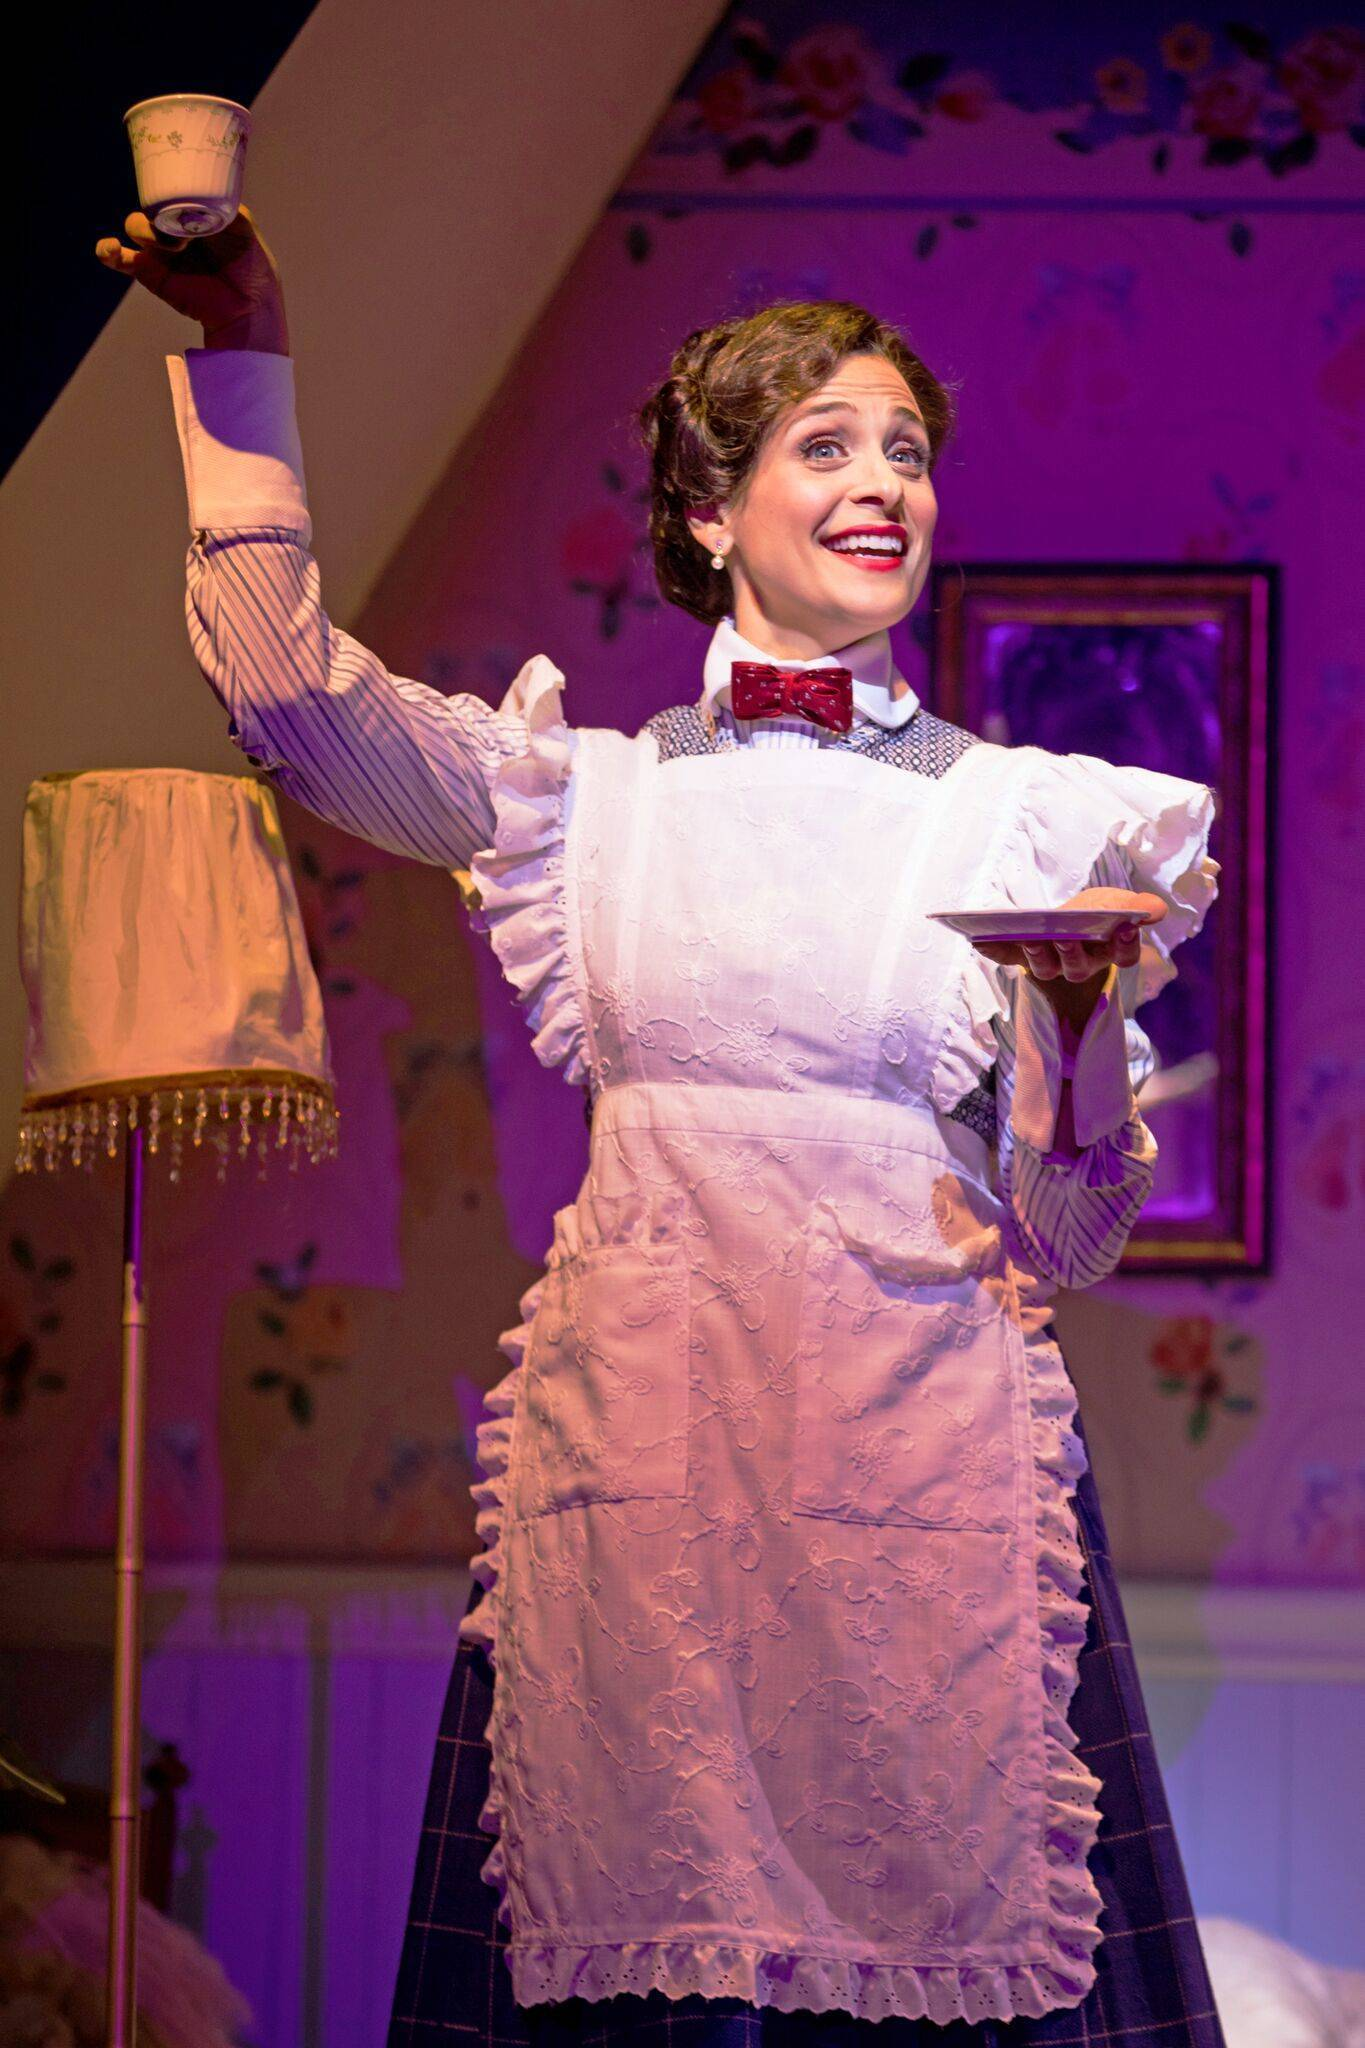 d5000a5240dad2a5f390_2c7b32d7f160655b667a_Mary_Poppins_Paper_Mill_Photo_7.jpg